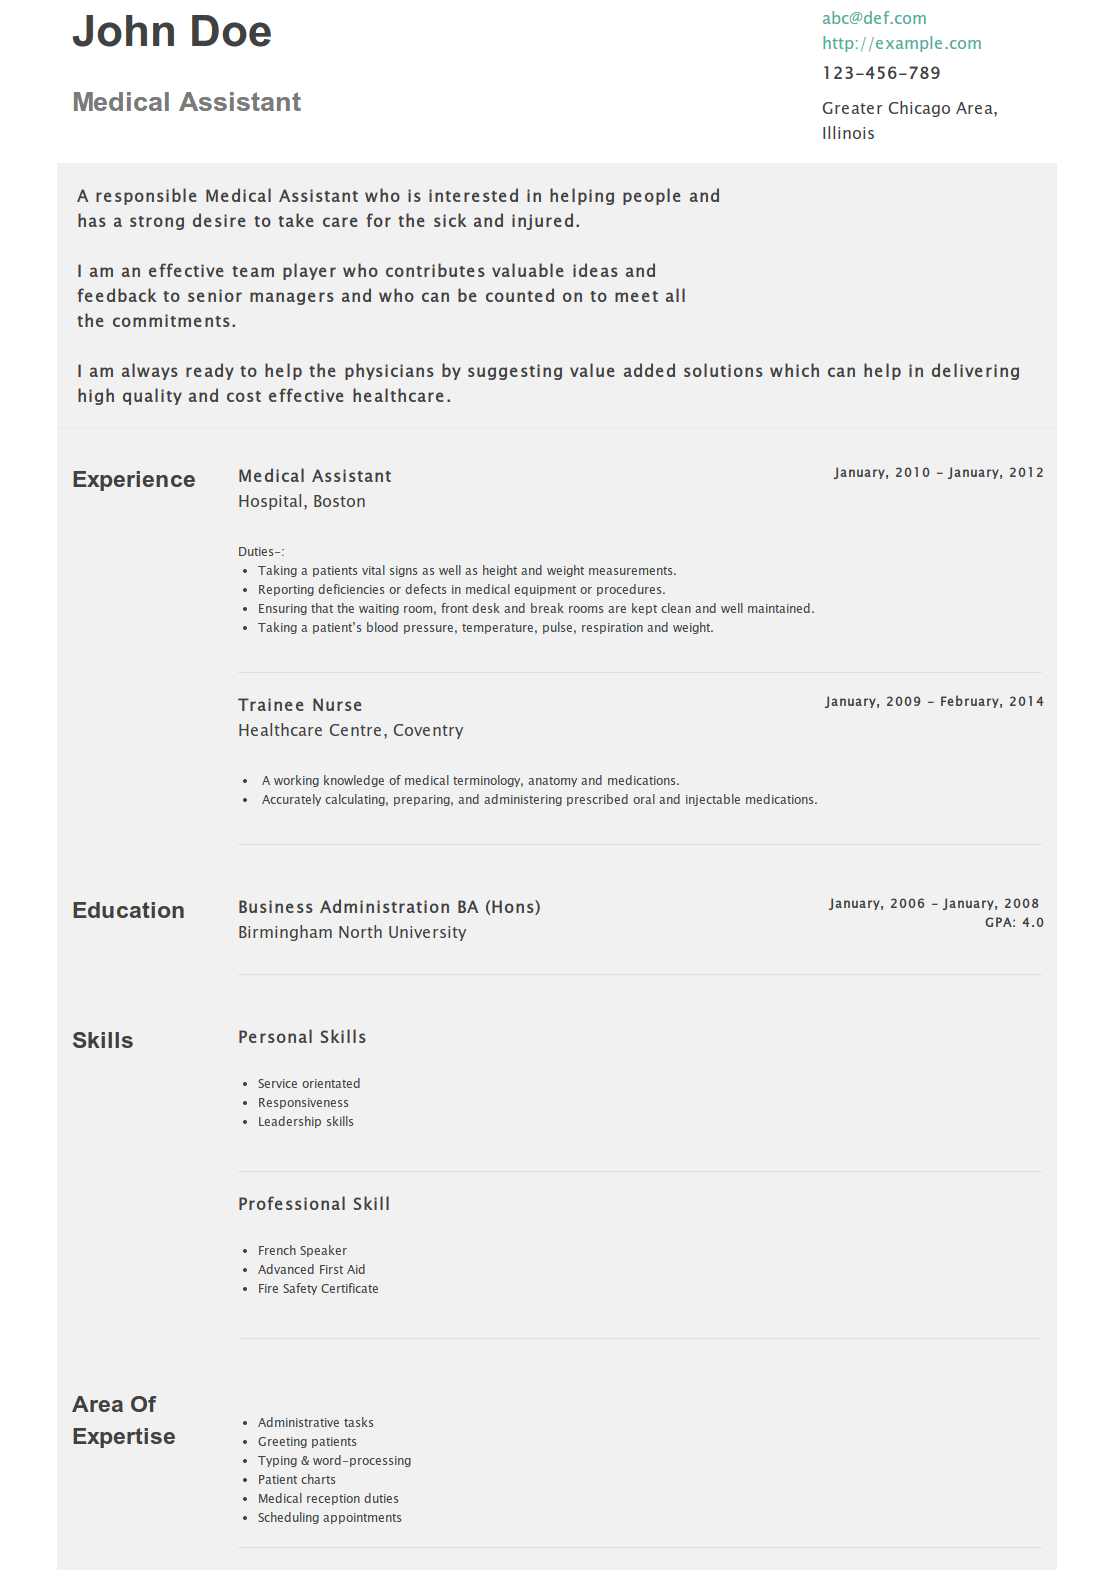 Medical Assistant Job Duties Resume Medical Assistant Resume Medical Assistant Pinterest Medical